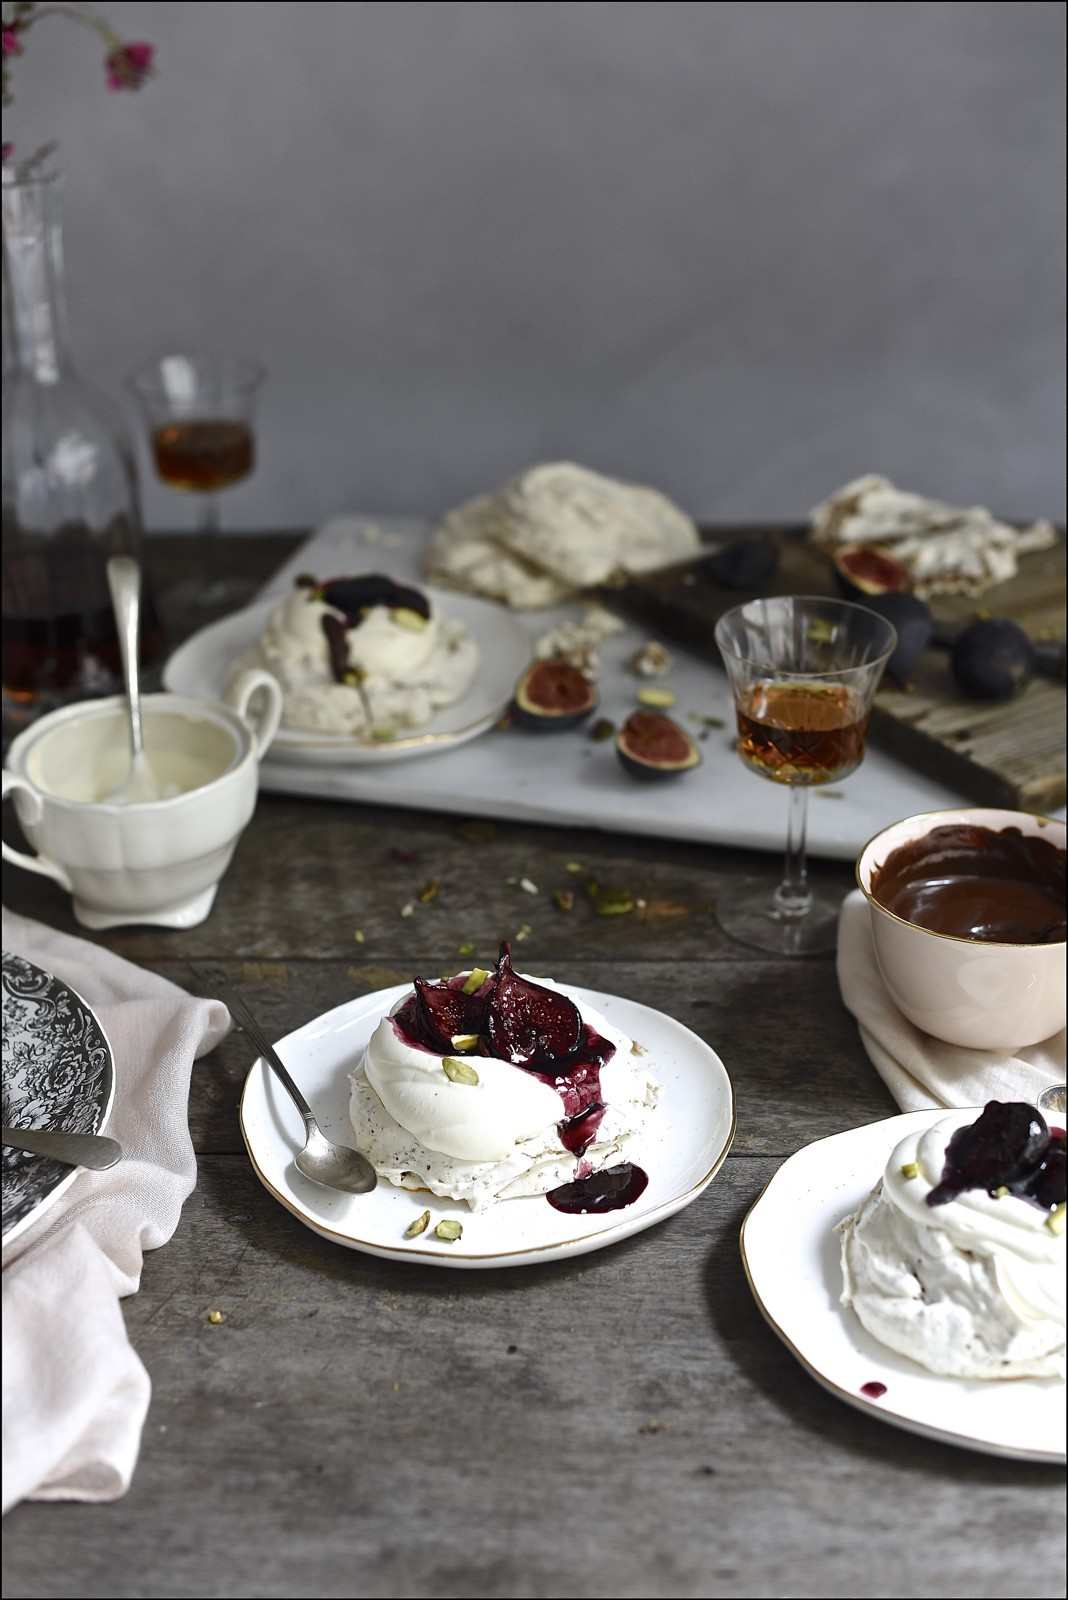 Hot cross bun pavlova with red wine figs | Bibbyskitchen dessert recipes